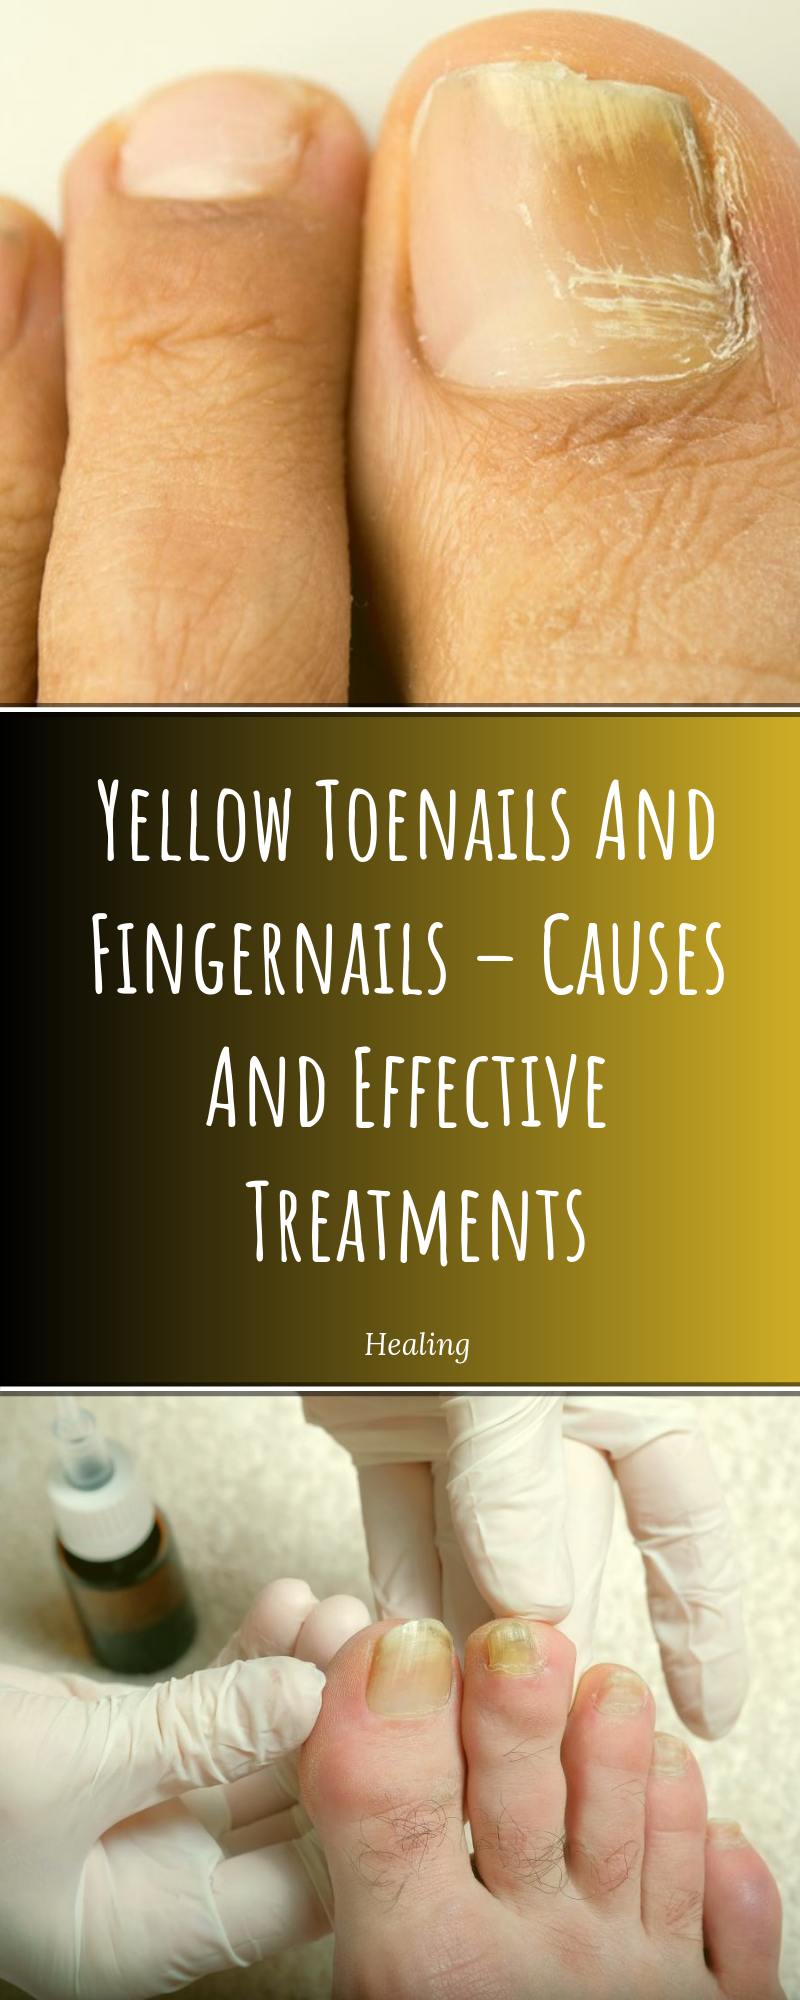 Yellow Toenails And Fingernails – Causes And Effective Treatments ...